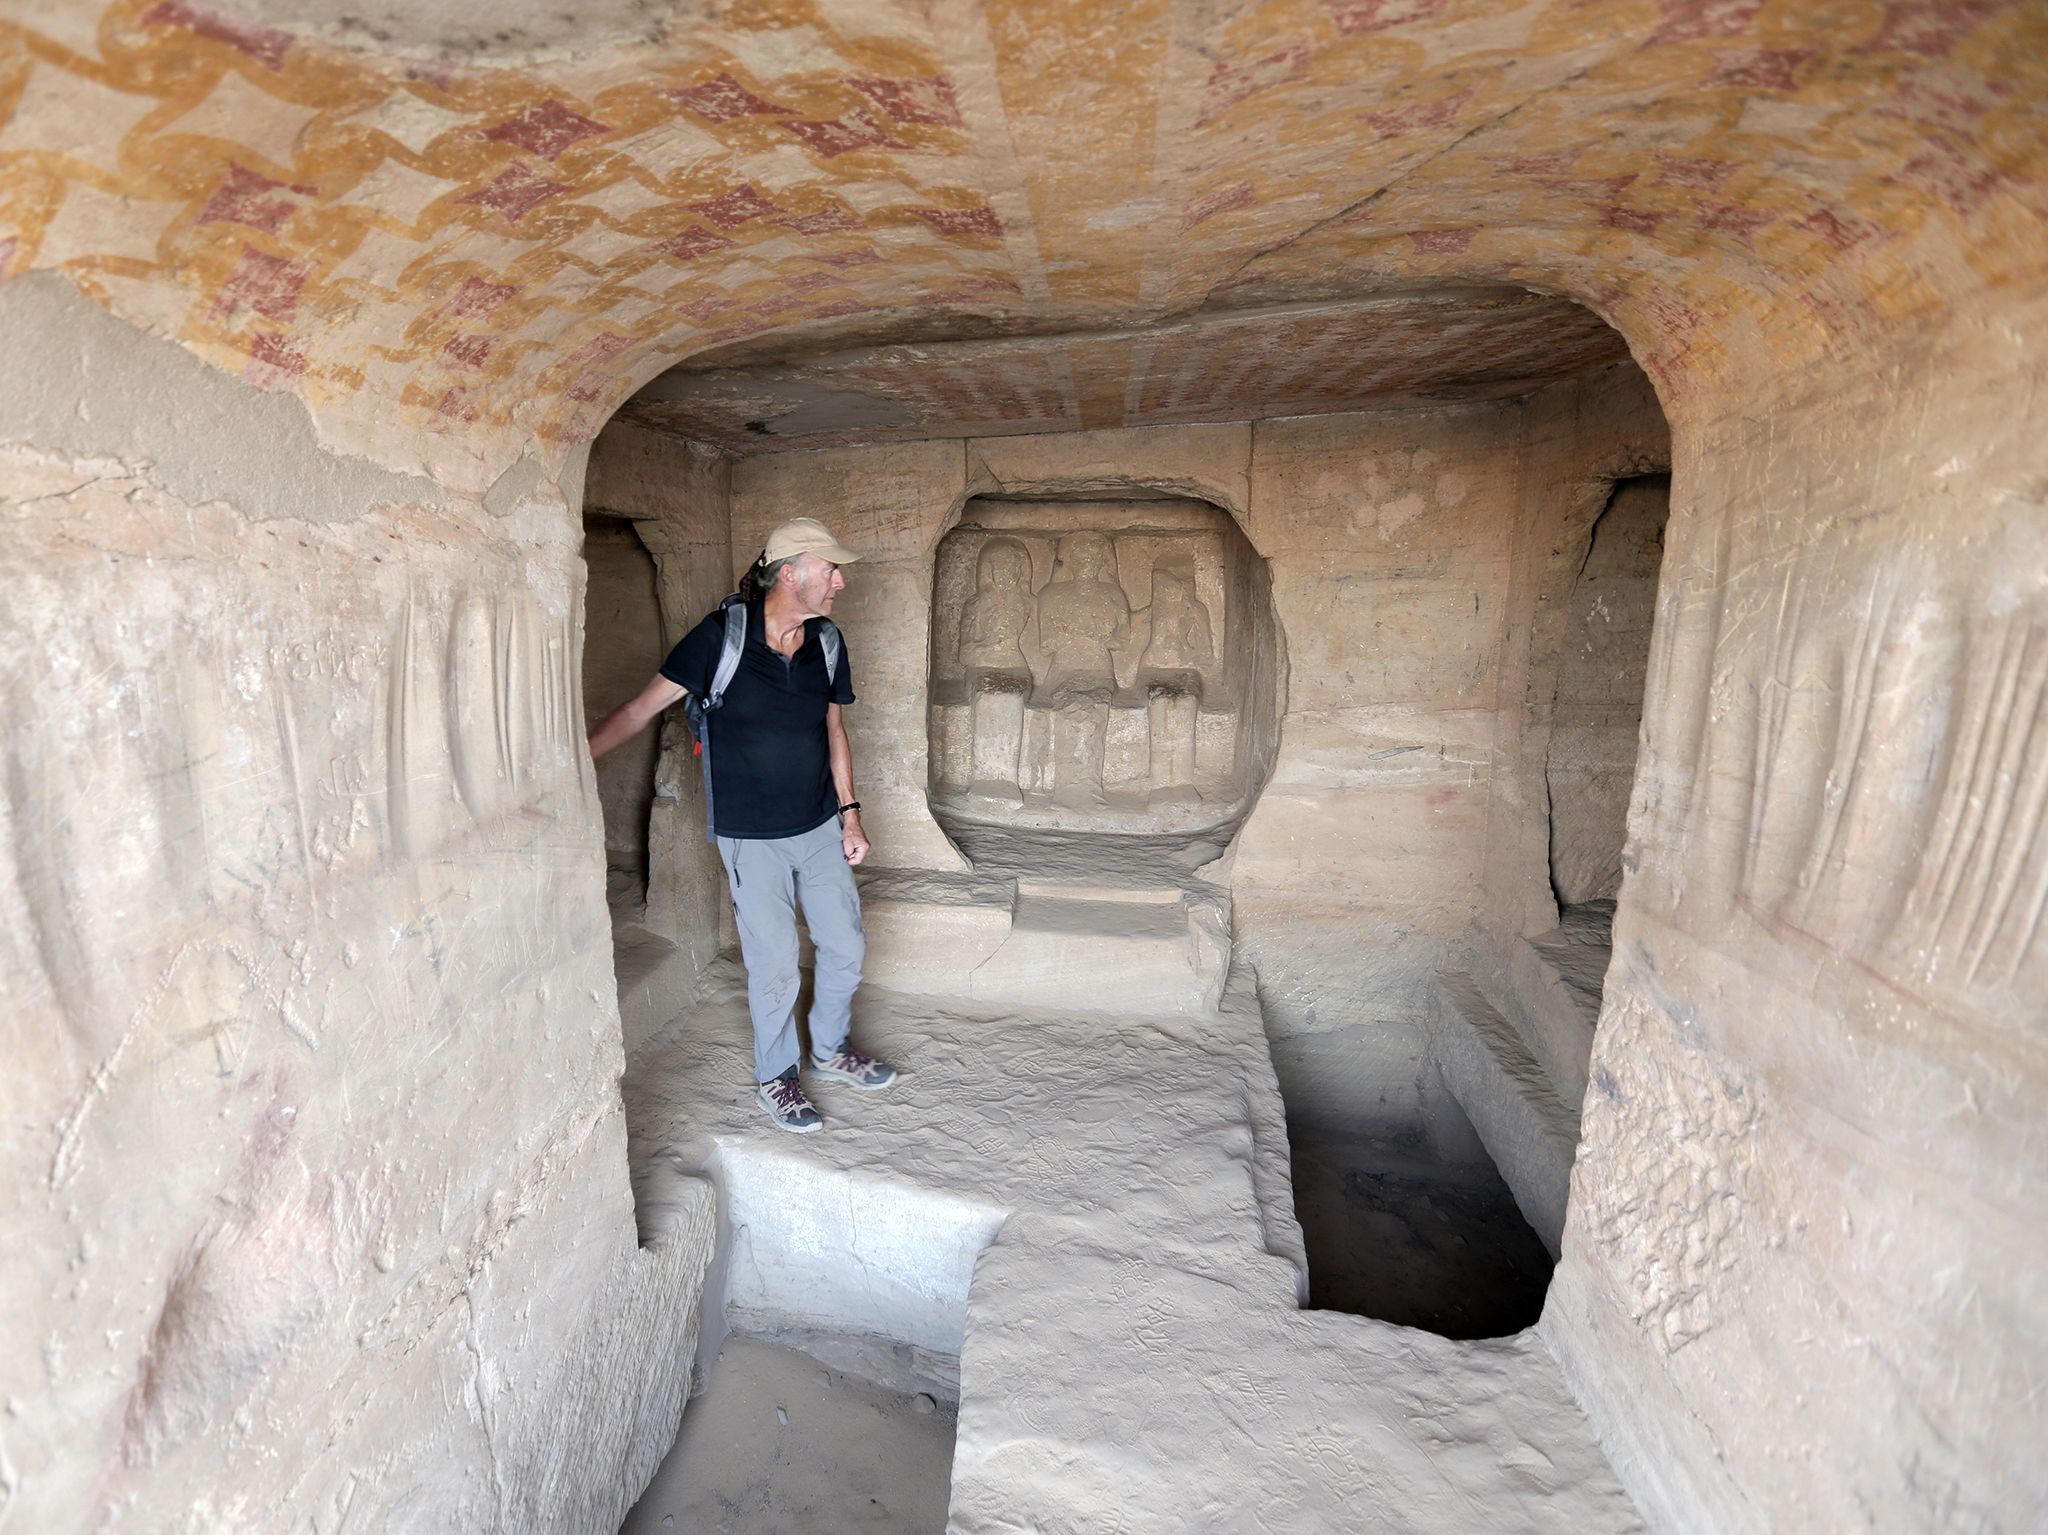 Ran Fiennes exploring a tomb at the historic site of Gebel el Sissela. This image is from Egypt... [Foto del giorno - aprile 2019]